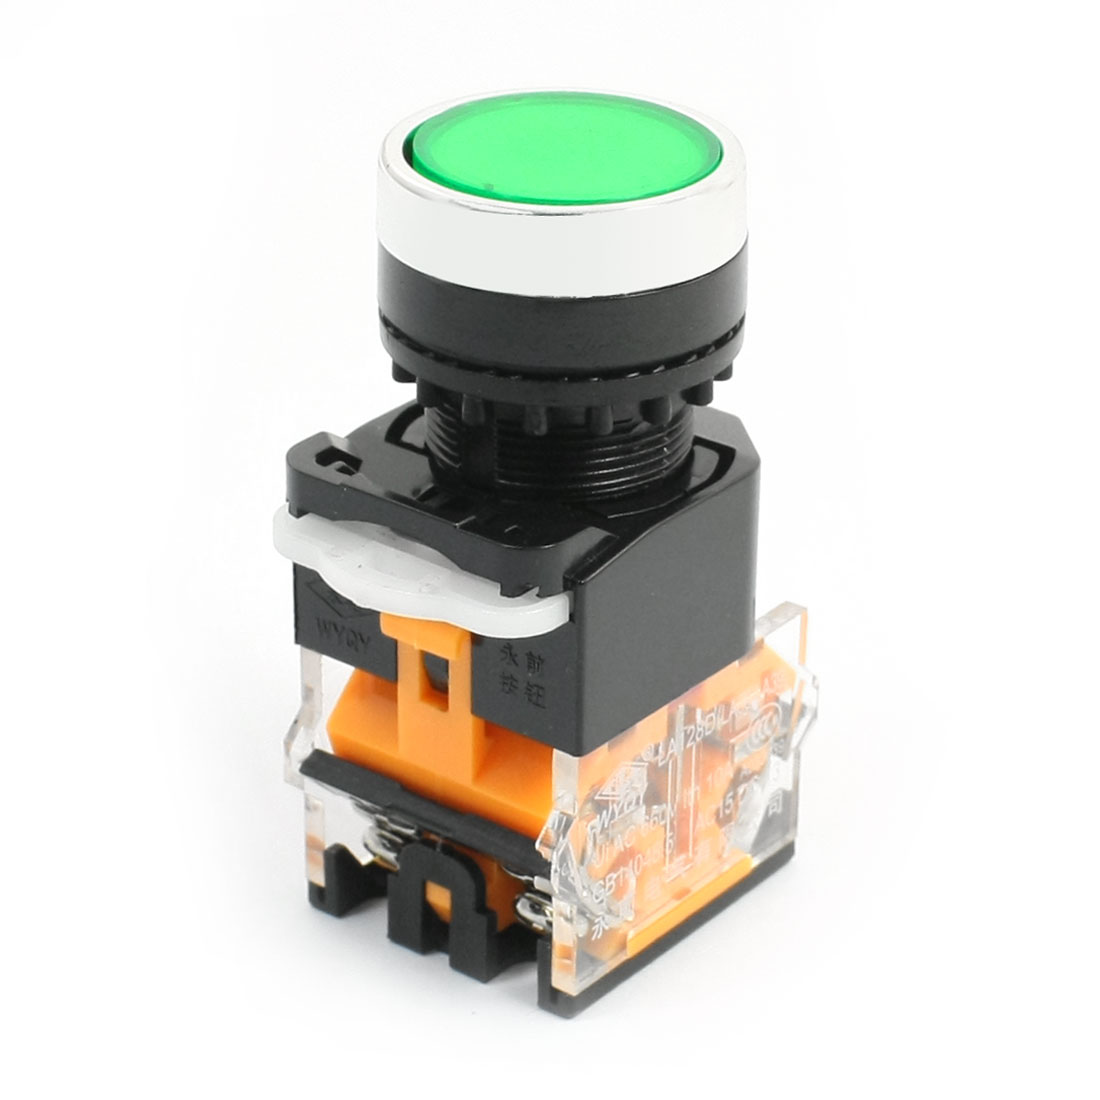 Panel Mount Green Round Cap Momentary DPST Emergency Stop Switch AC 660V 10A